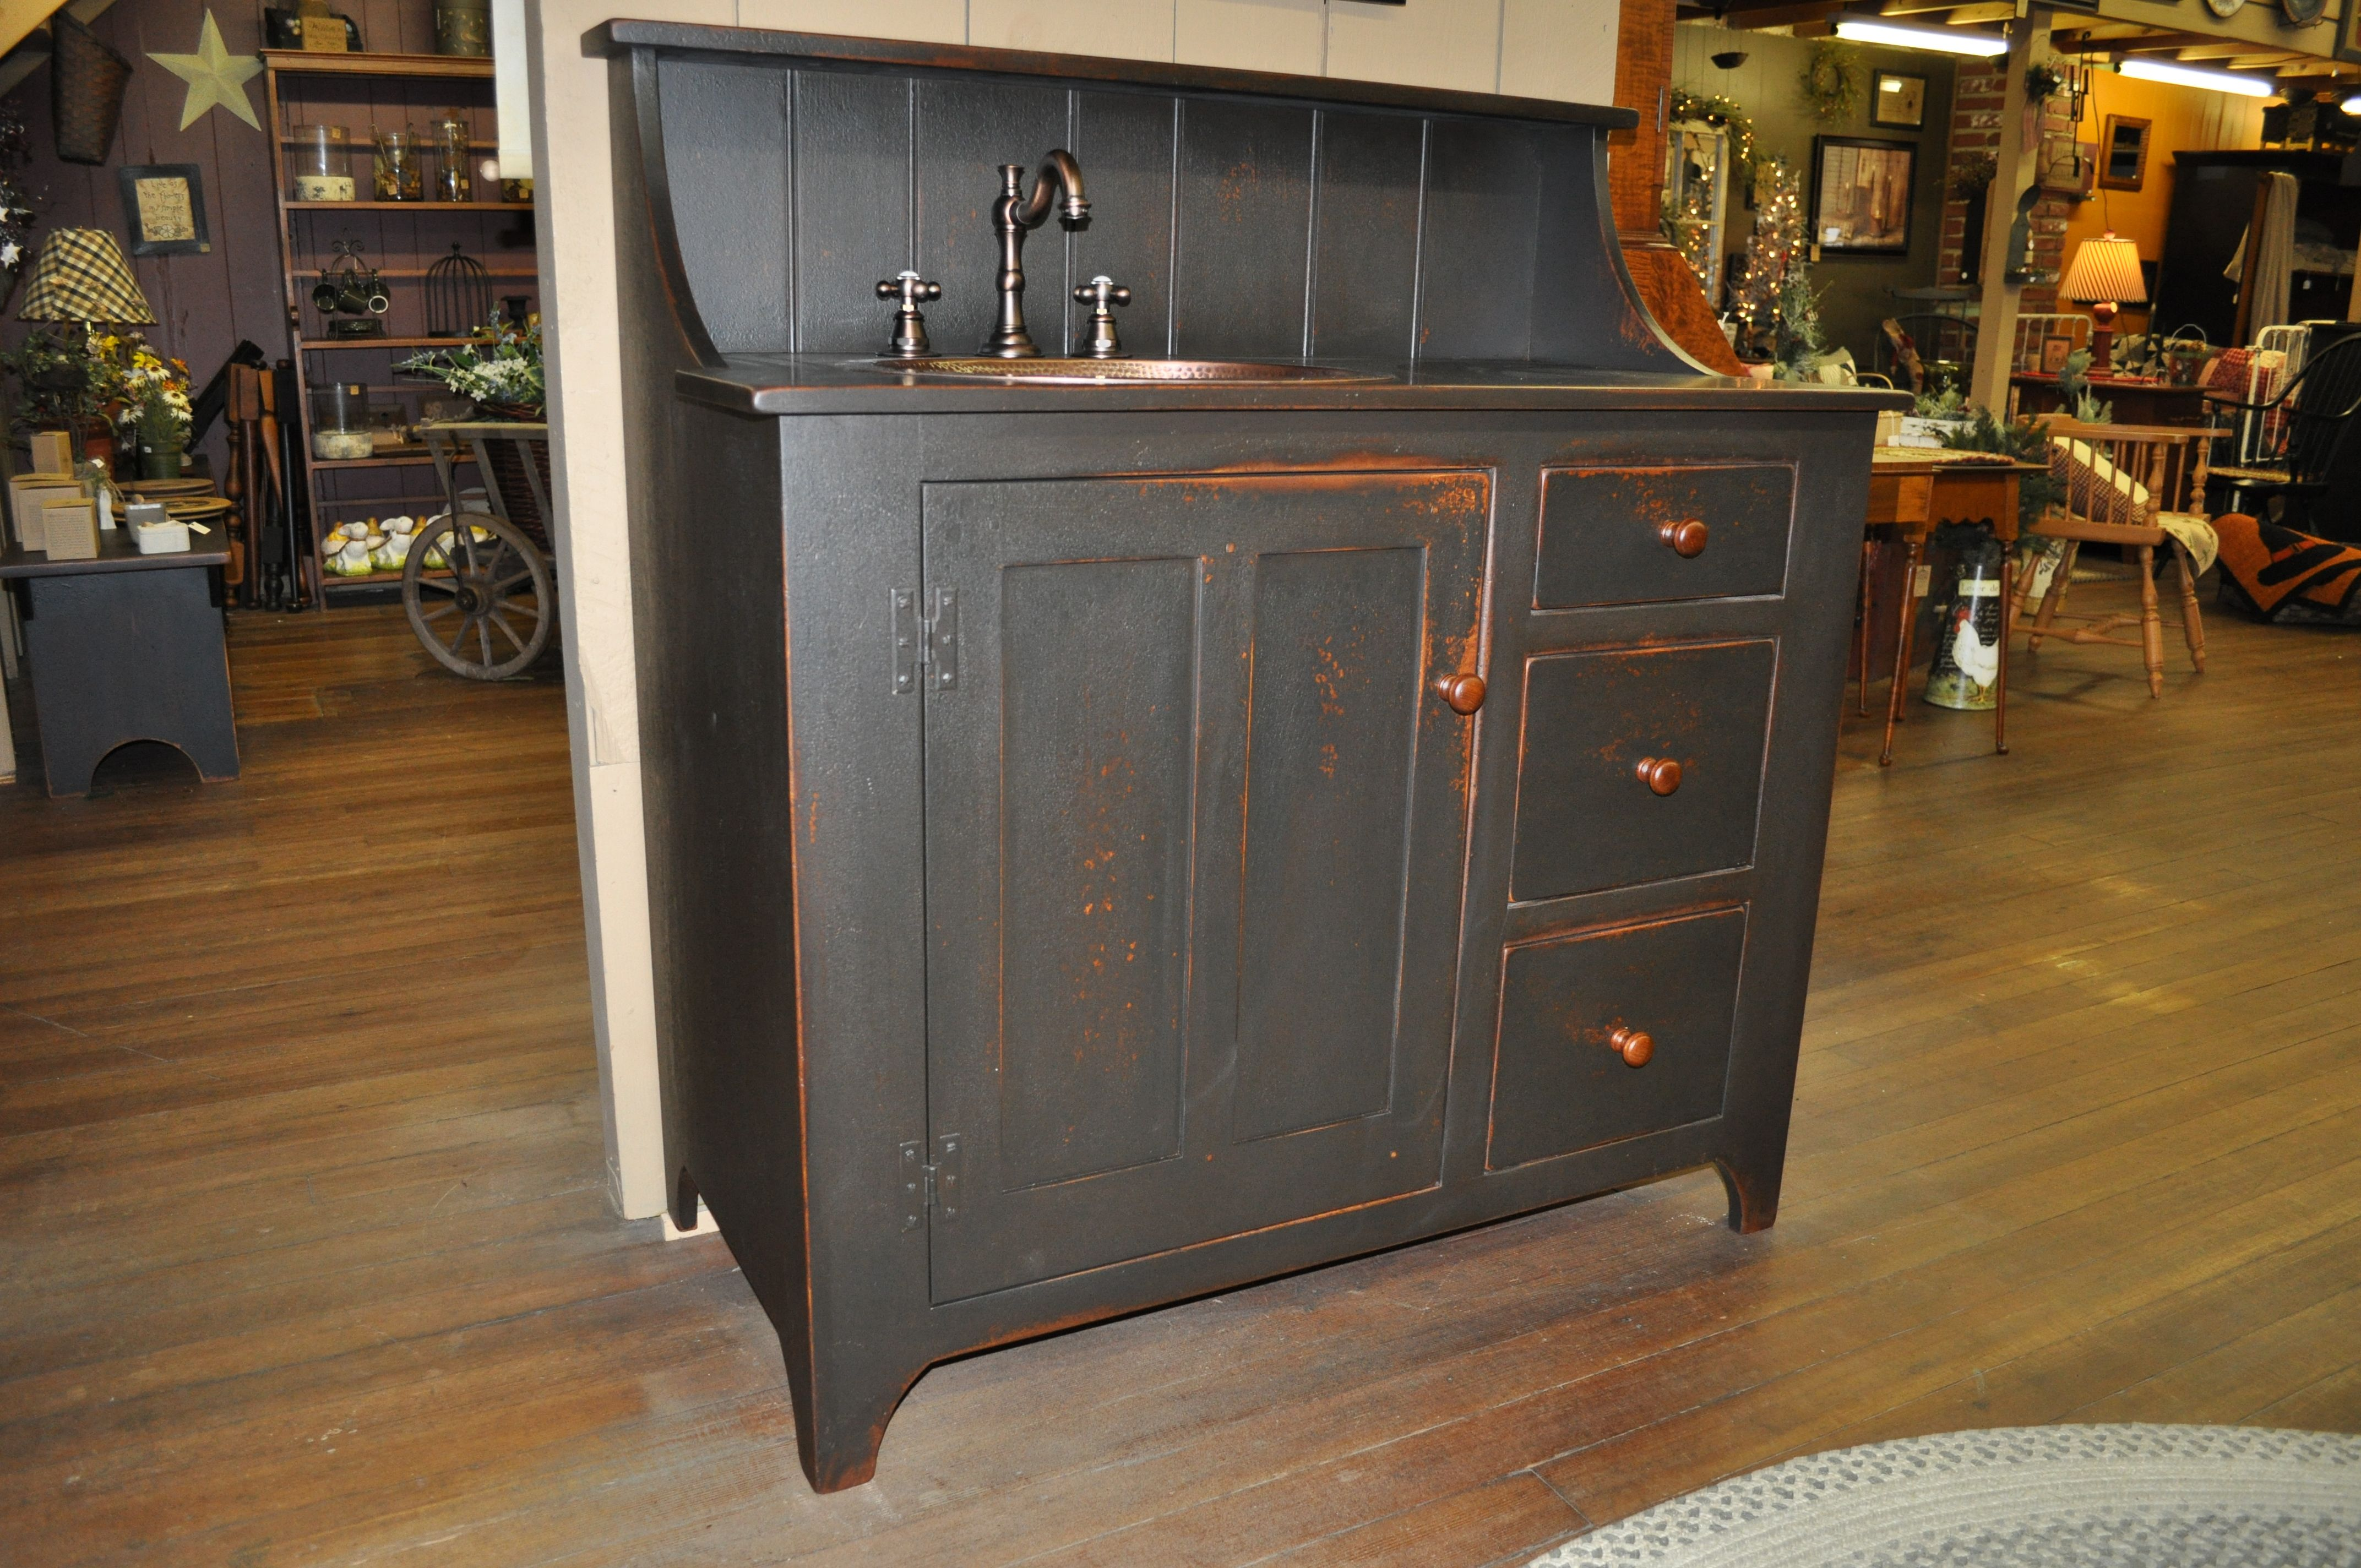 photos com new of inspirational vanities vanity french june country htsrec bathroom pictures